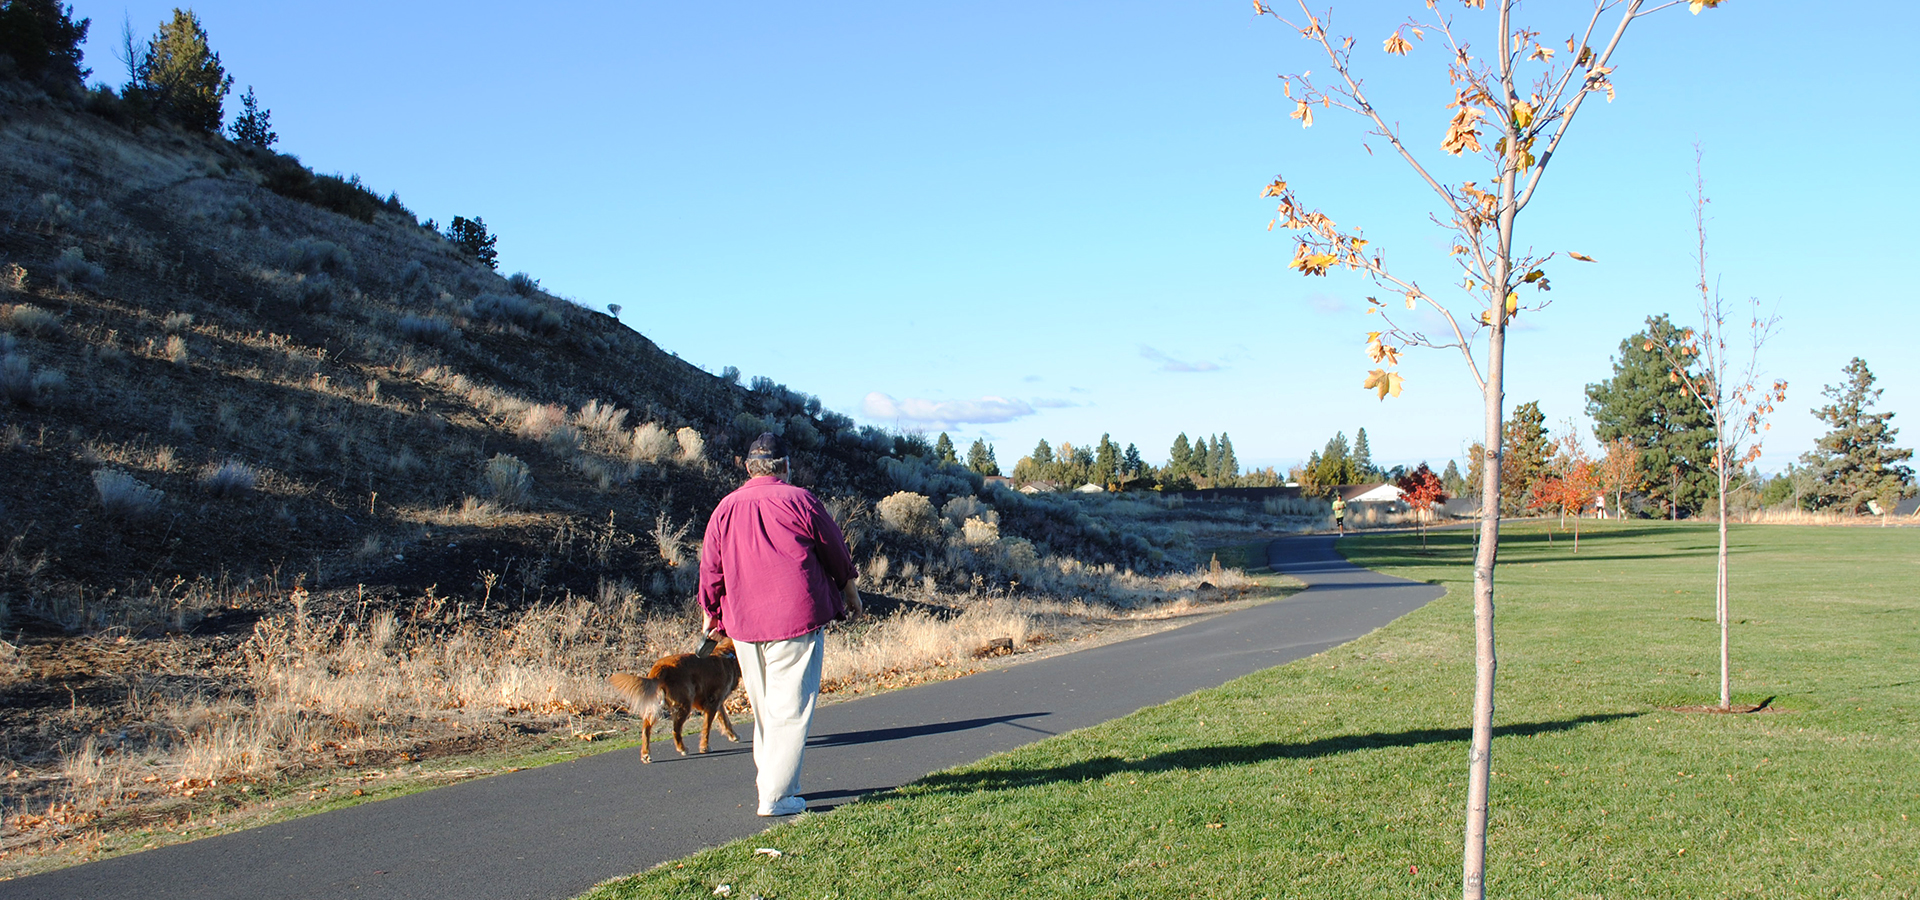 Image of a trail user walking on the Larkspur Trail in Bend.